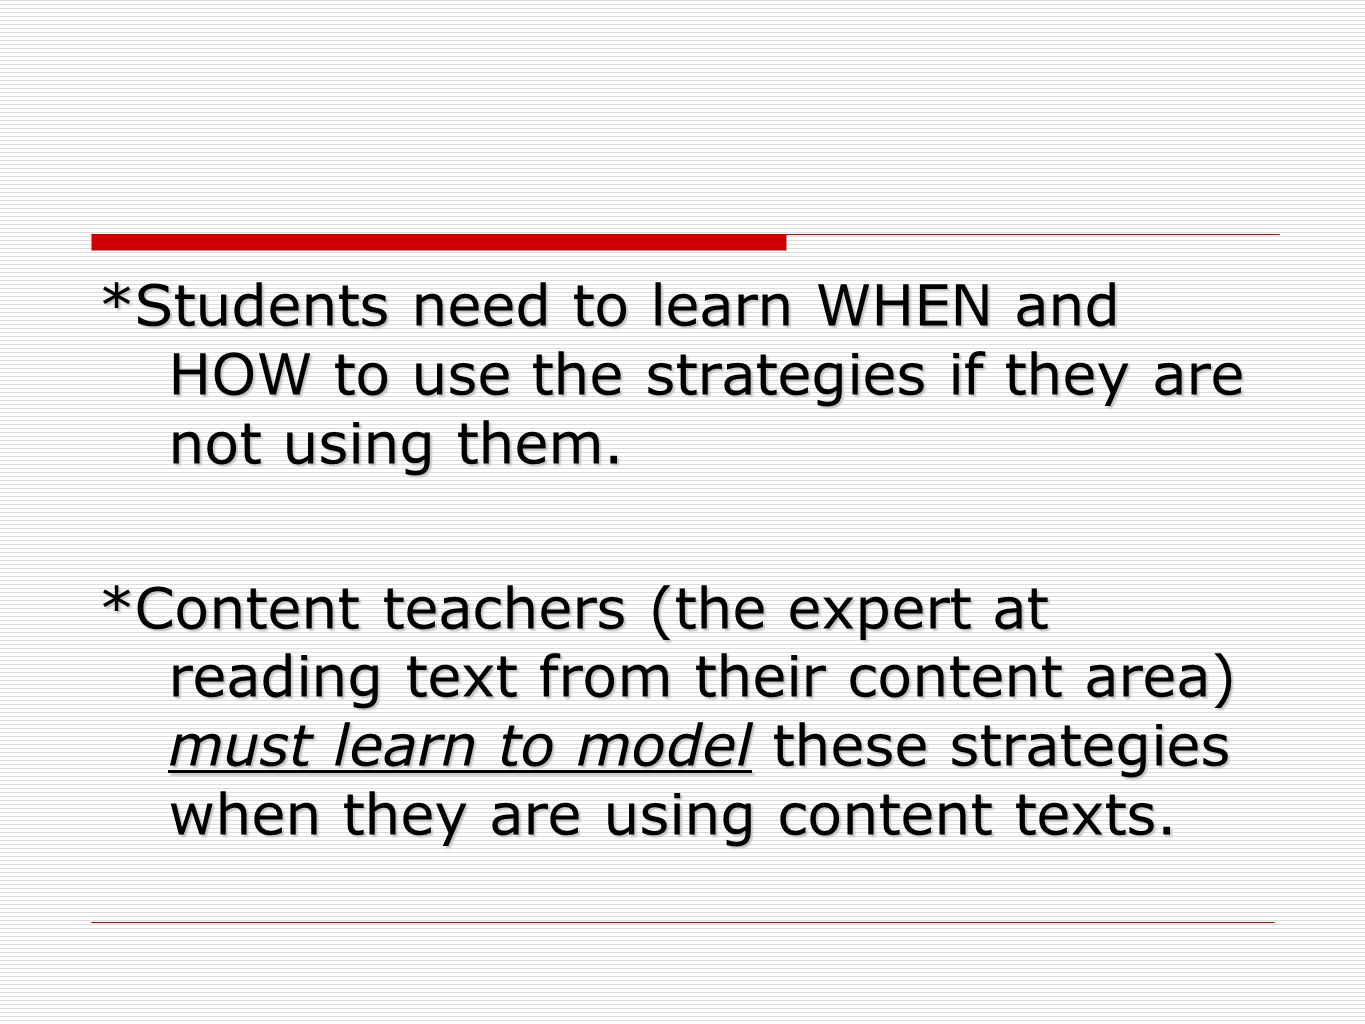 *Students need to learn WHEN and HOW to use the strategies if they are not using them.